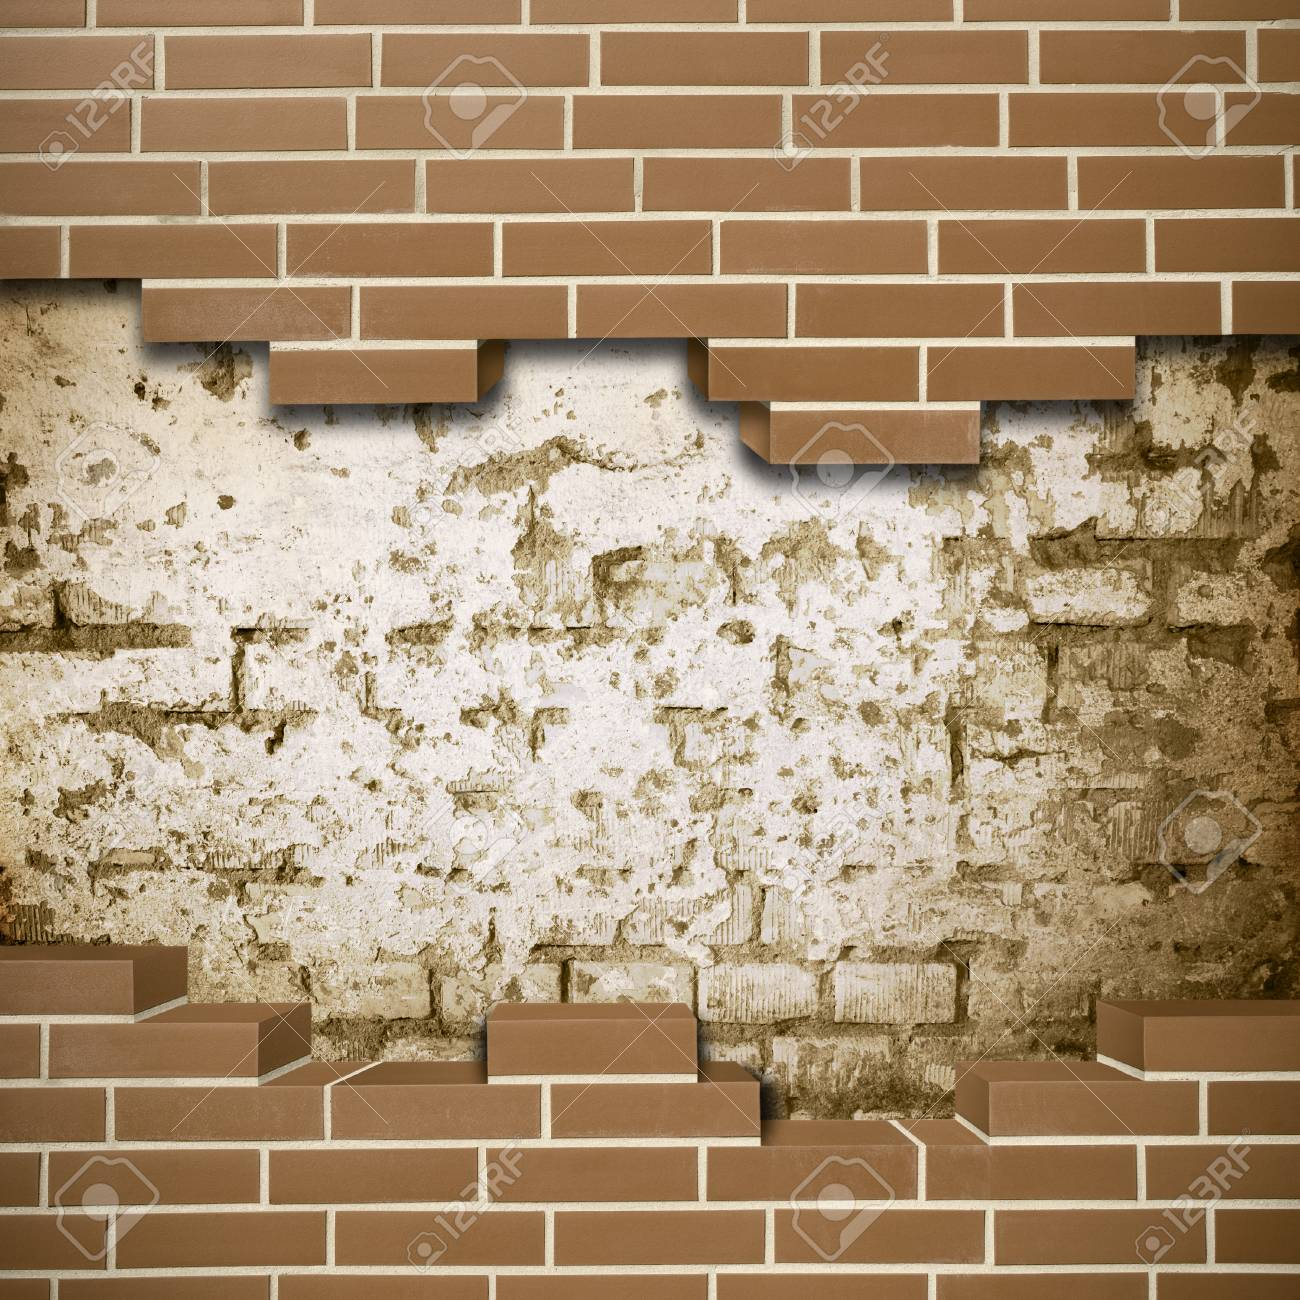 Vintage red brickwall with grunge wall in the background Stock Photo - 24205614